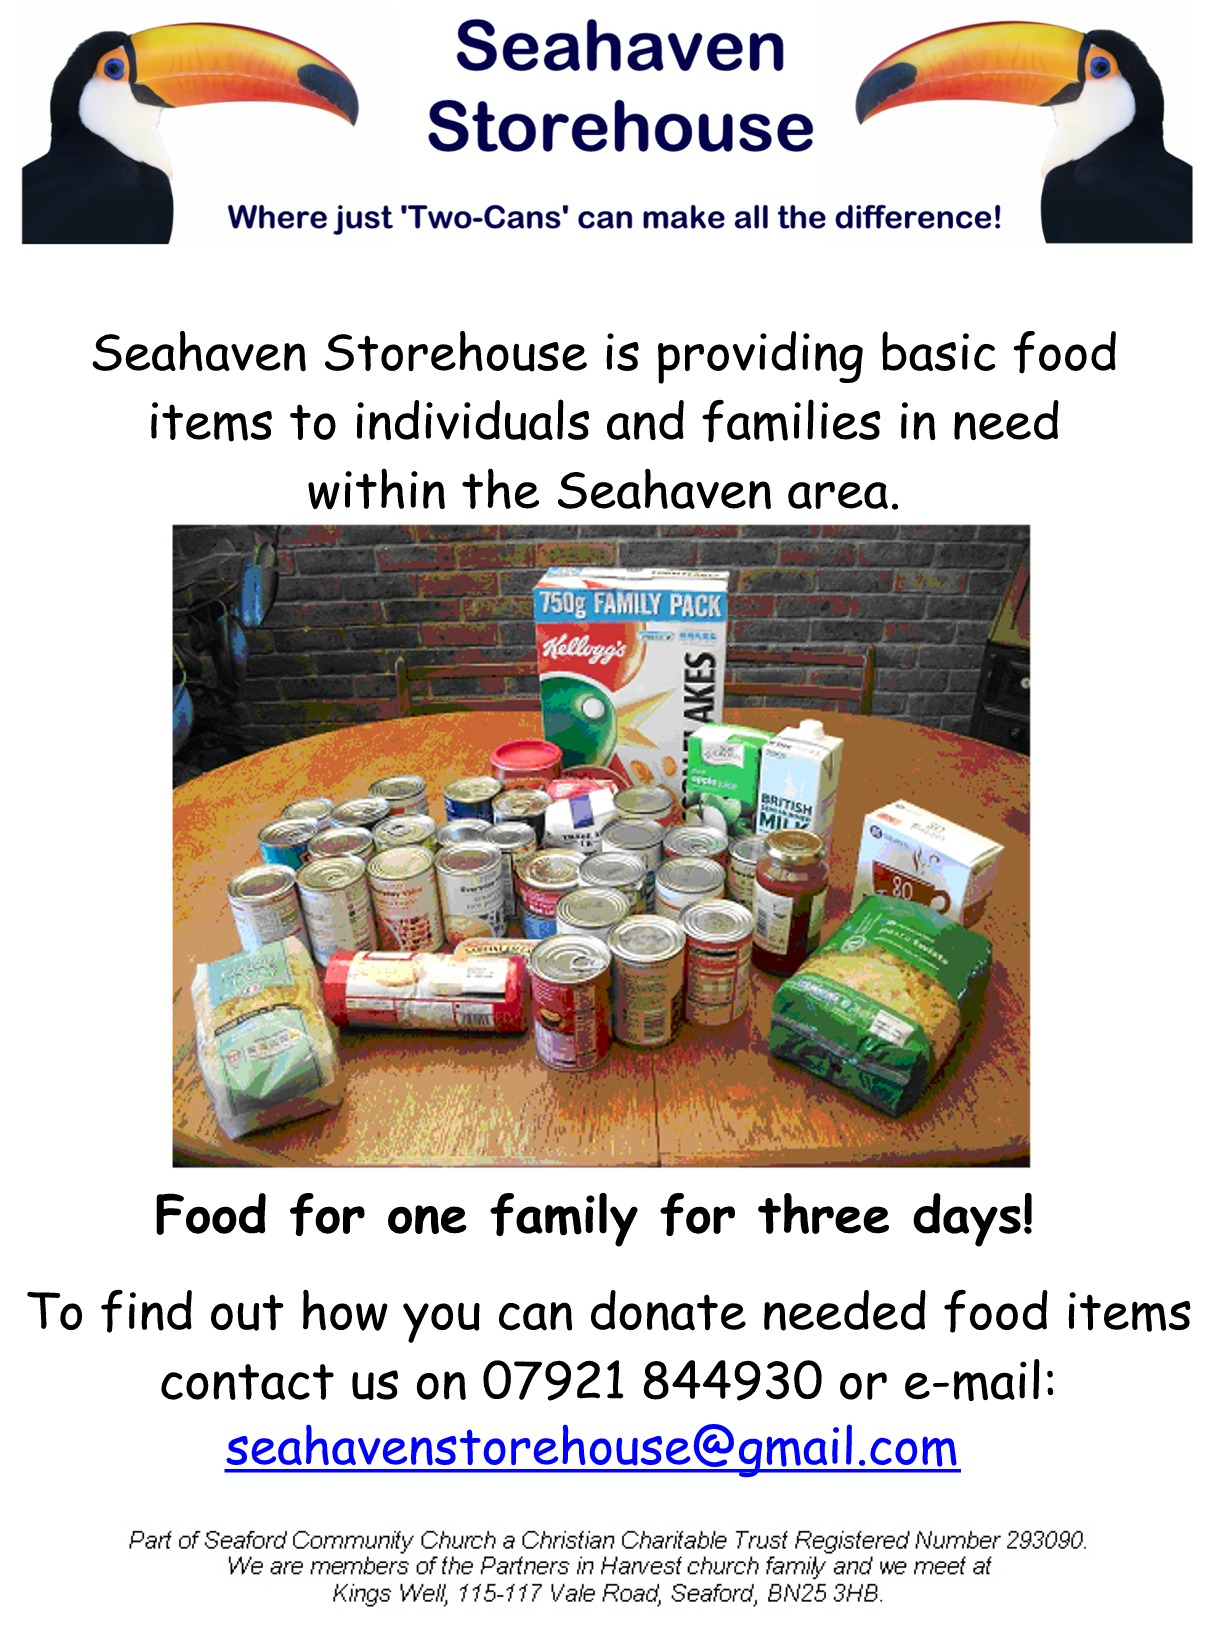 Seahaven Storehouse, operating in Seaford, Newhaven and Peacehaven, provides food items for individuals and families in need